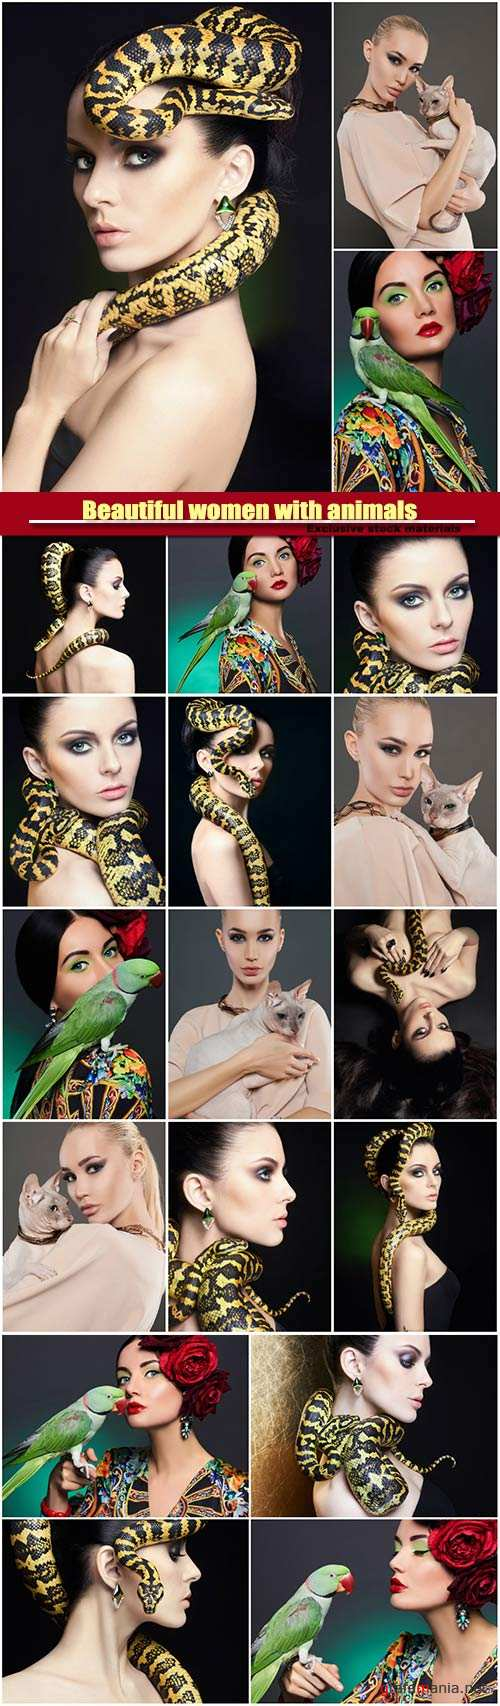 Beautiful women with animals, girl with snake girl with a parrot, girl with cat